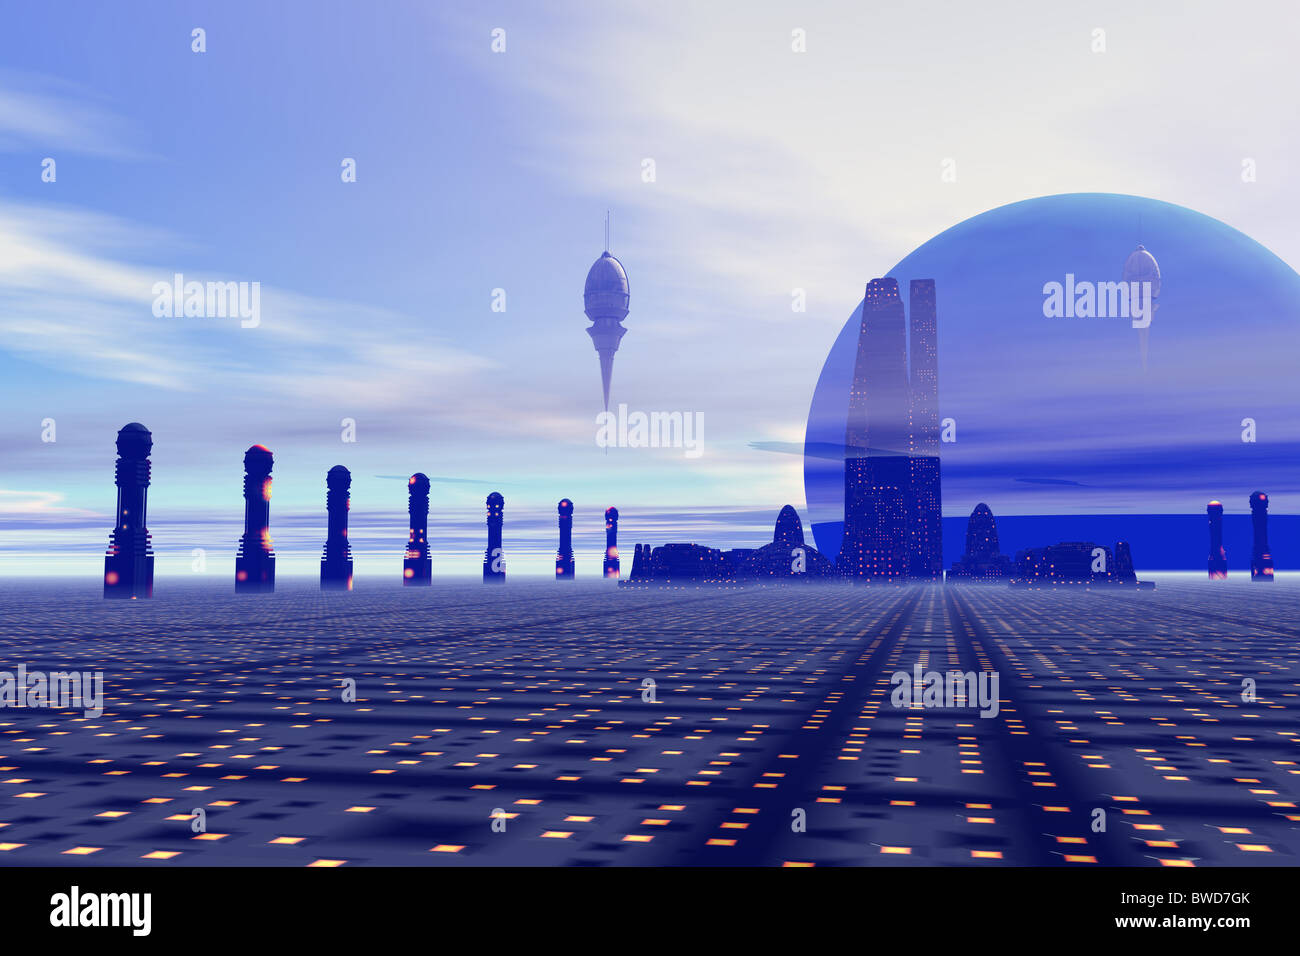 Futuristic city on a planet at the edge of the Milky Way. - Stock Image